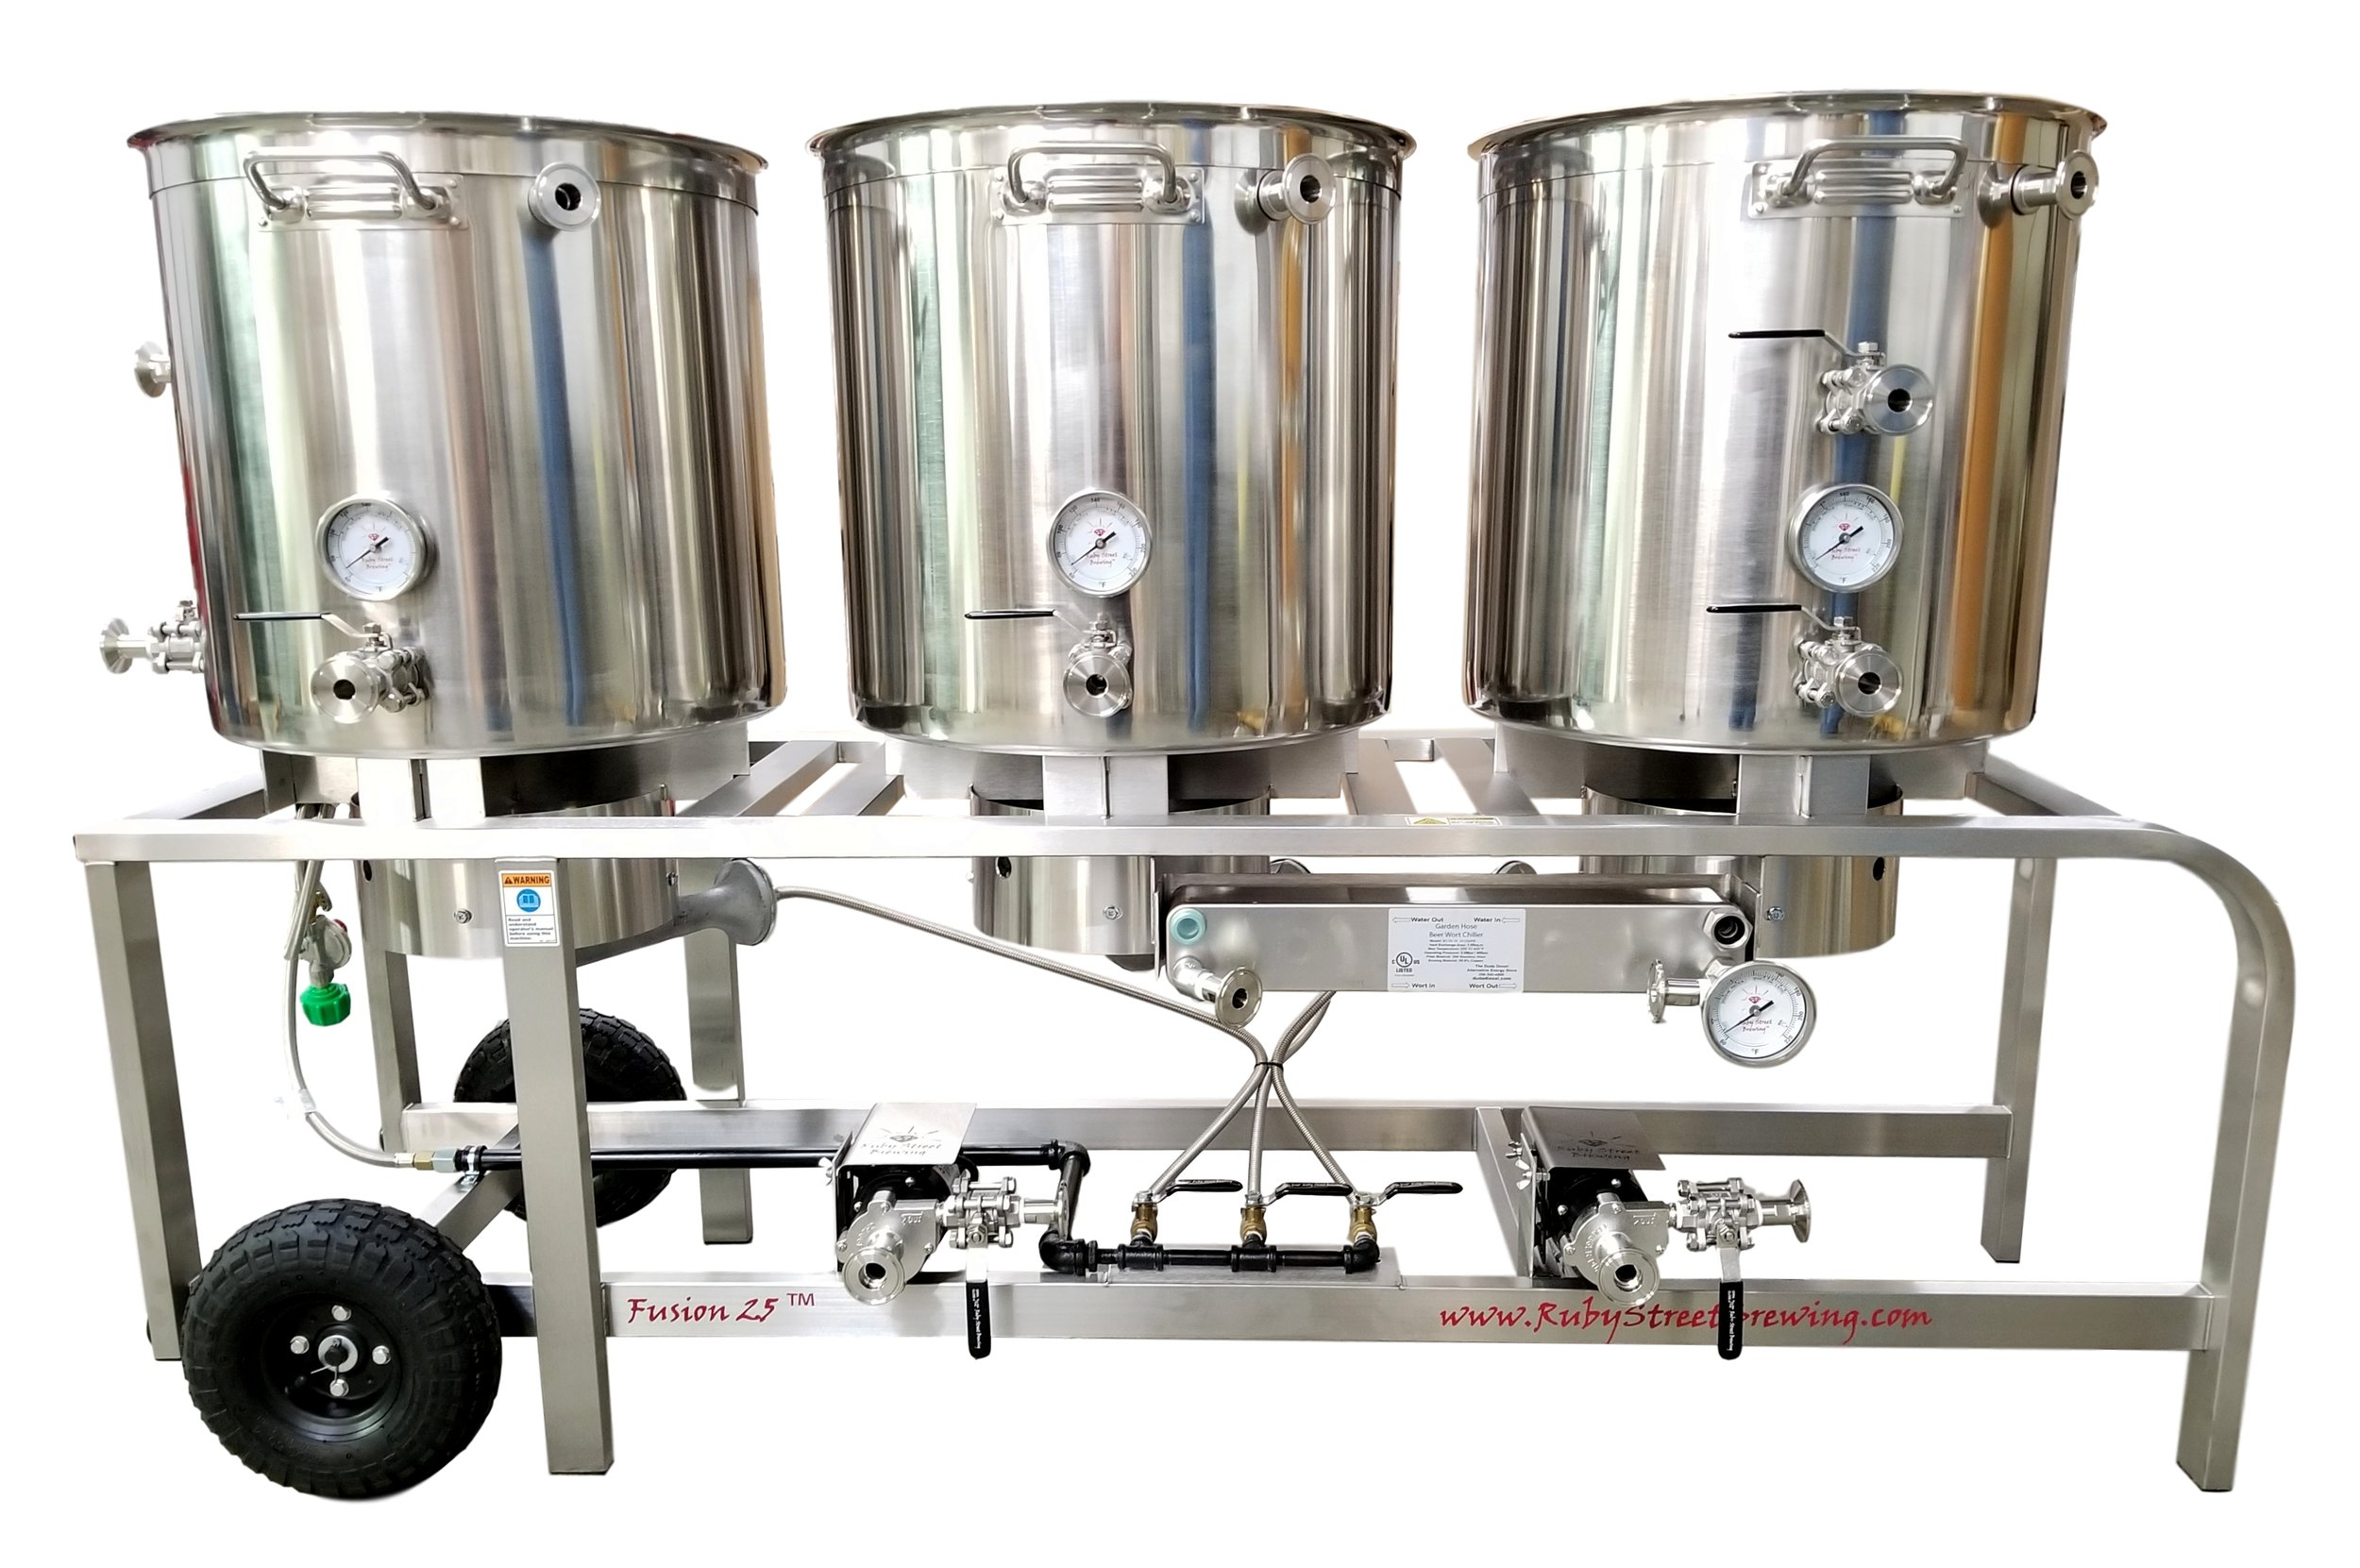 Shown with options:  Stainless Frame Upgrade, HERMS Coil, Plate Chiller, Whirlpool, Through-wall HLT